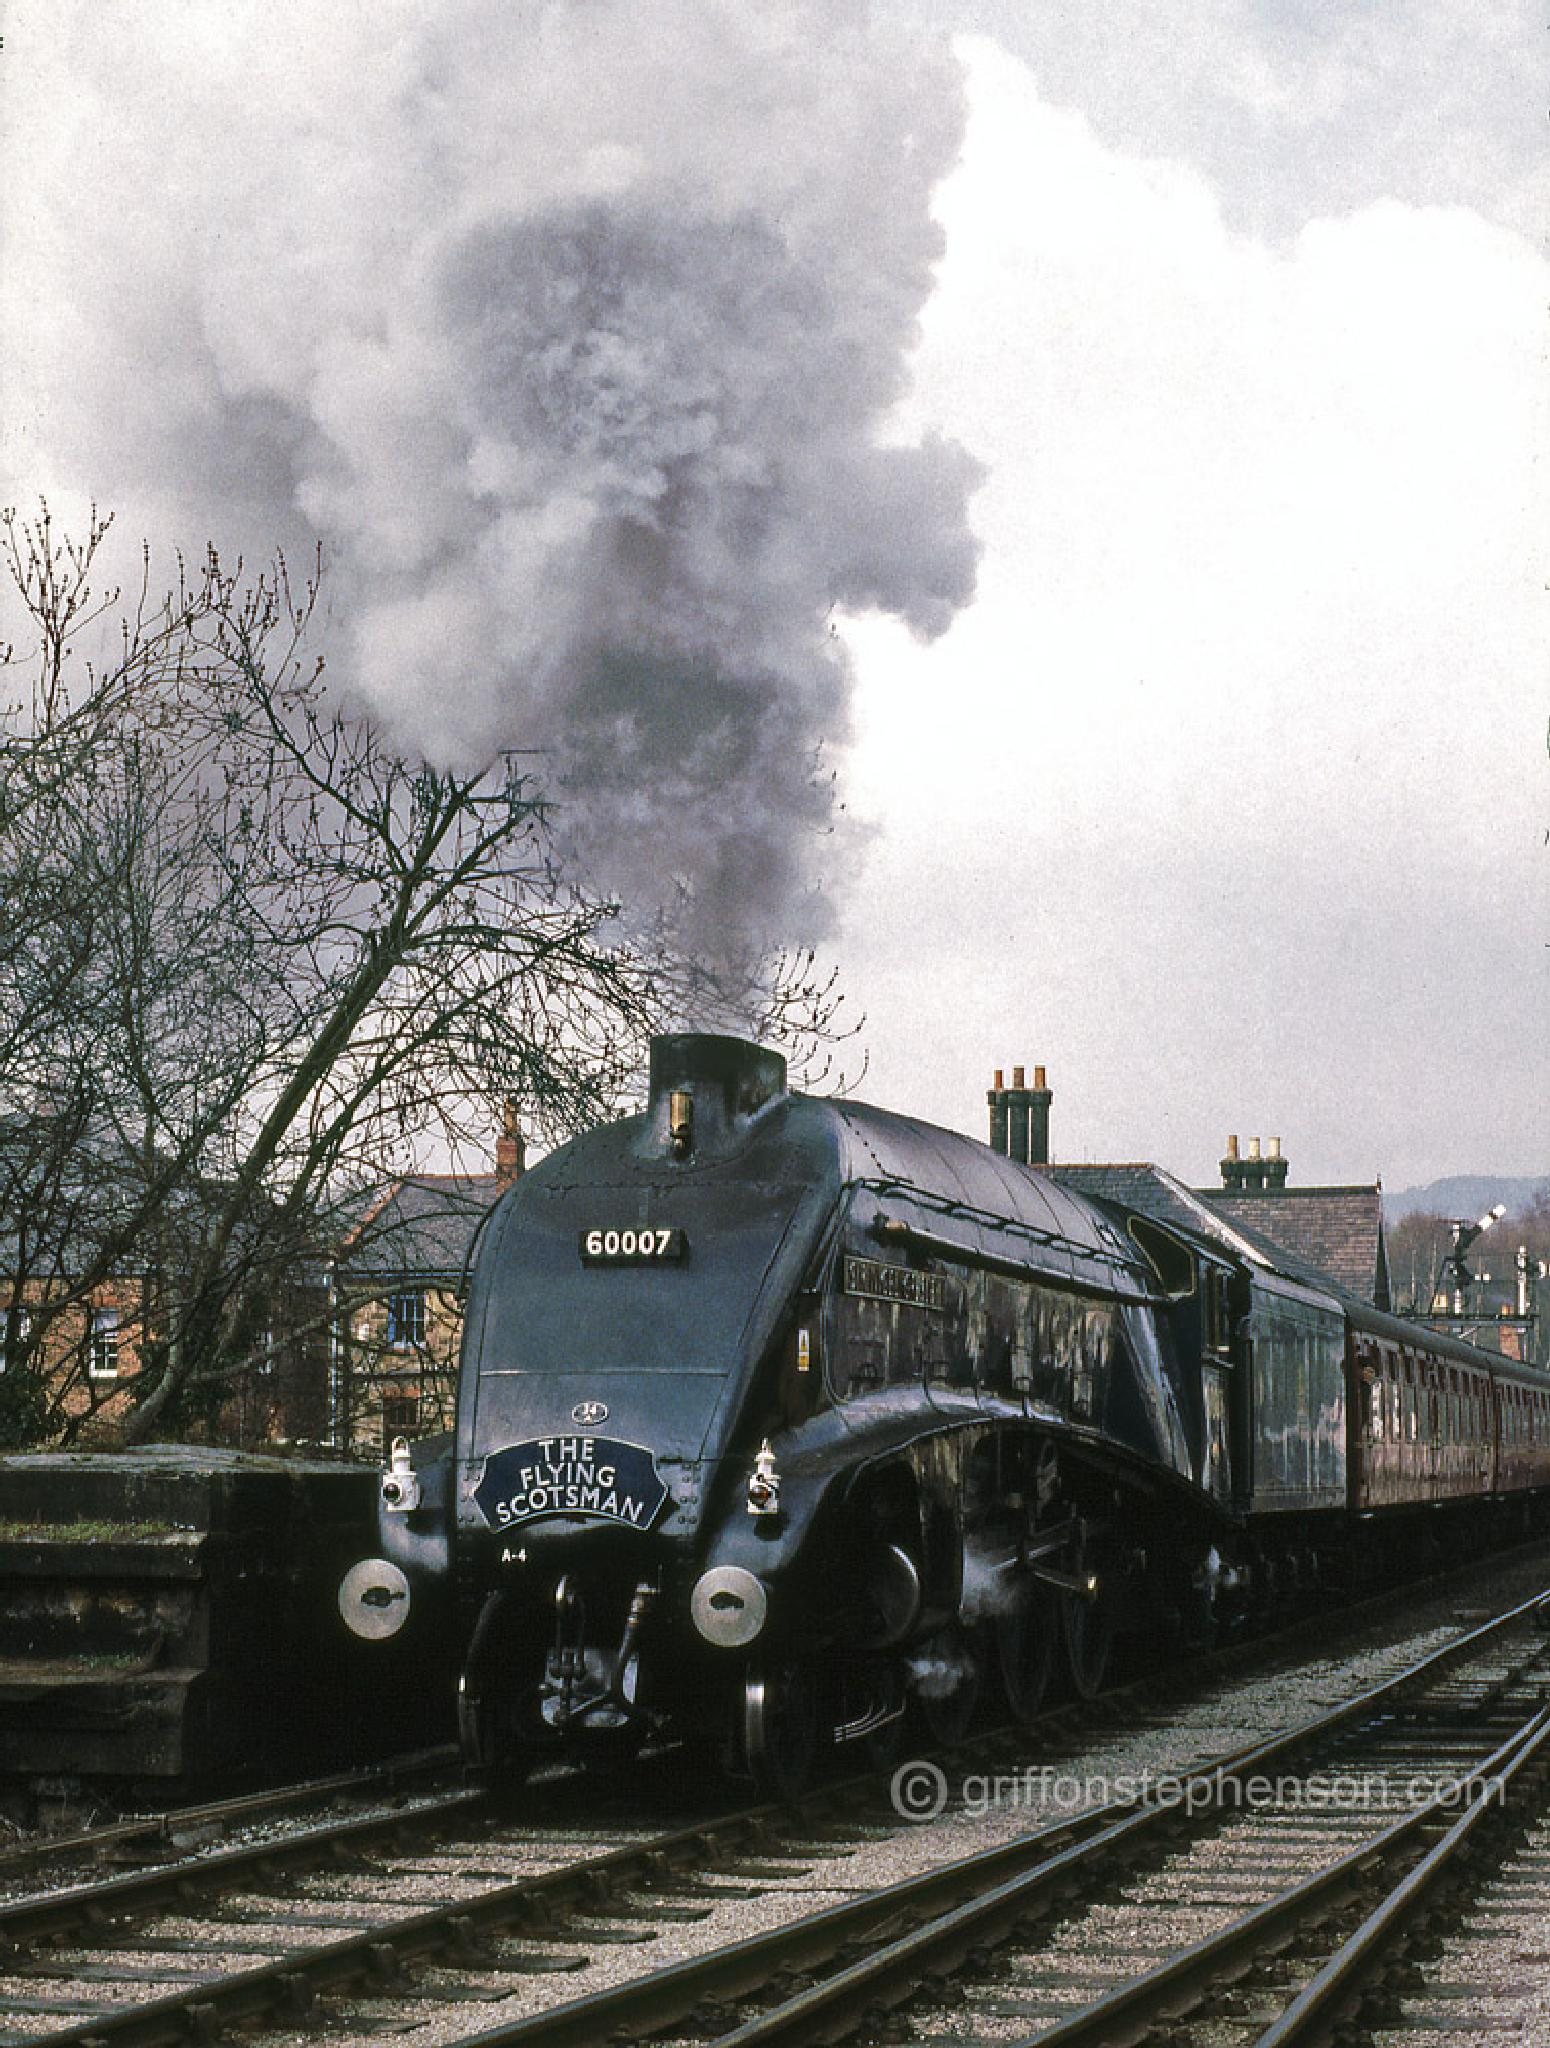 The Flying Scotsman by Thomas Dyer@griffonstephenson.com